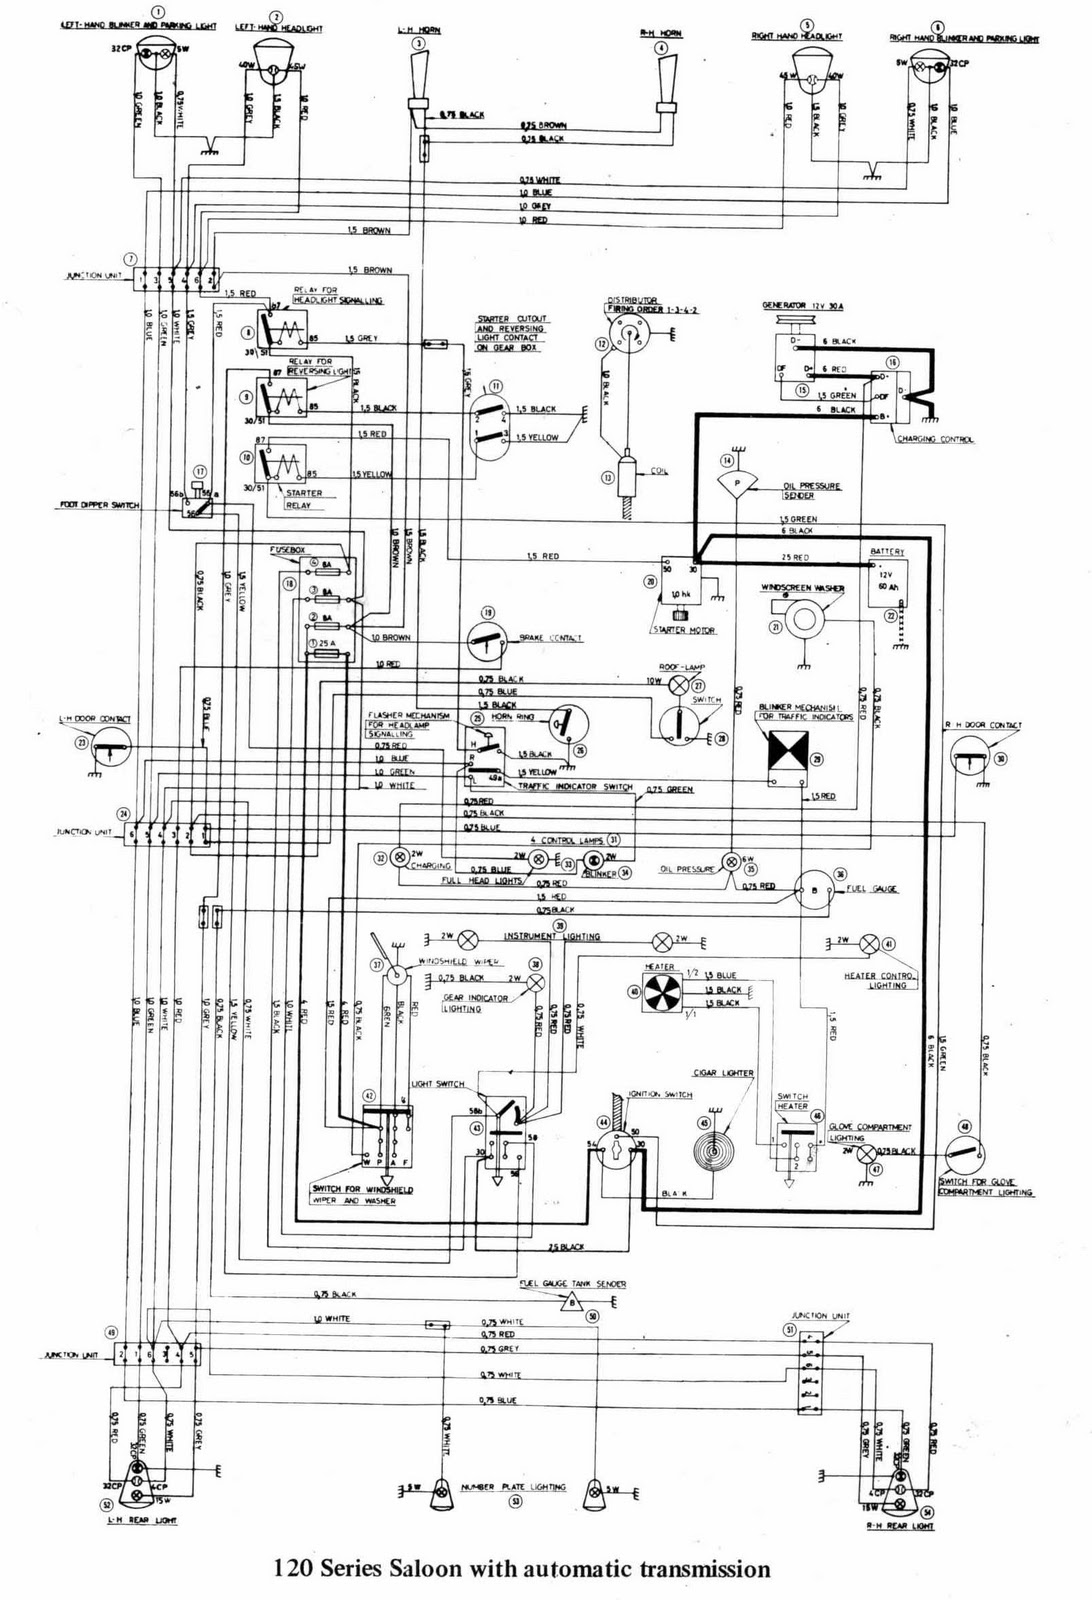 complete wiring diagrams of volvo 122s all about wiring. Black Bedroom Furniture Sets. Home Design Ideas